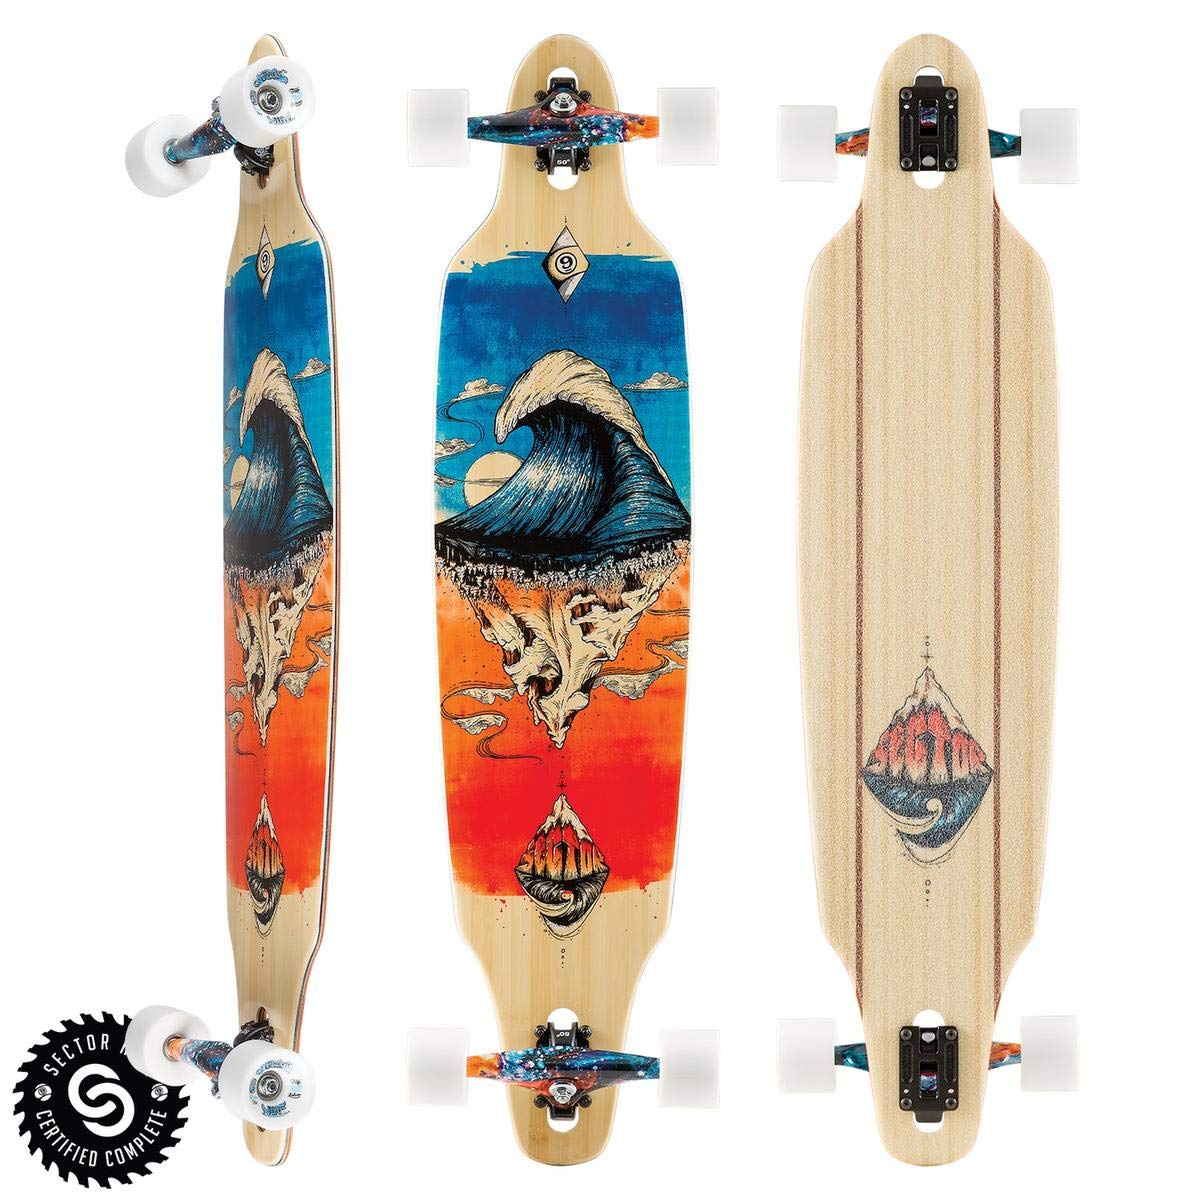 Sector 9 Pinnacle Lookout Dropthrough Complete Longboard Skateboard, 9.6-Inch x 42.0-Inch